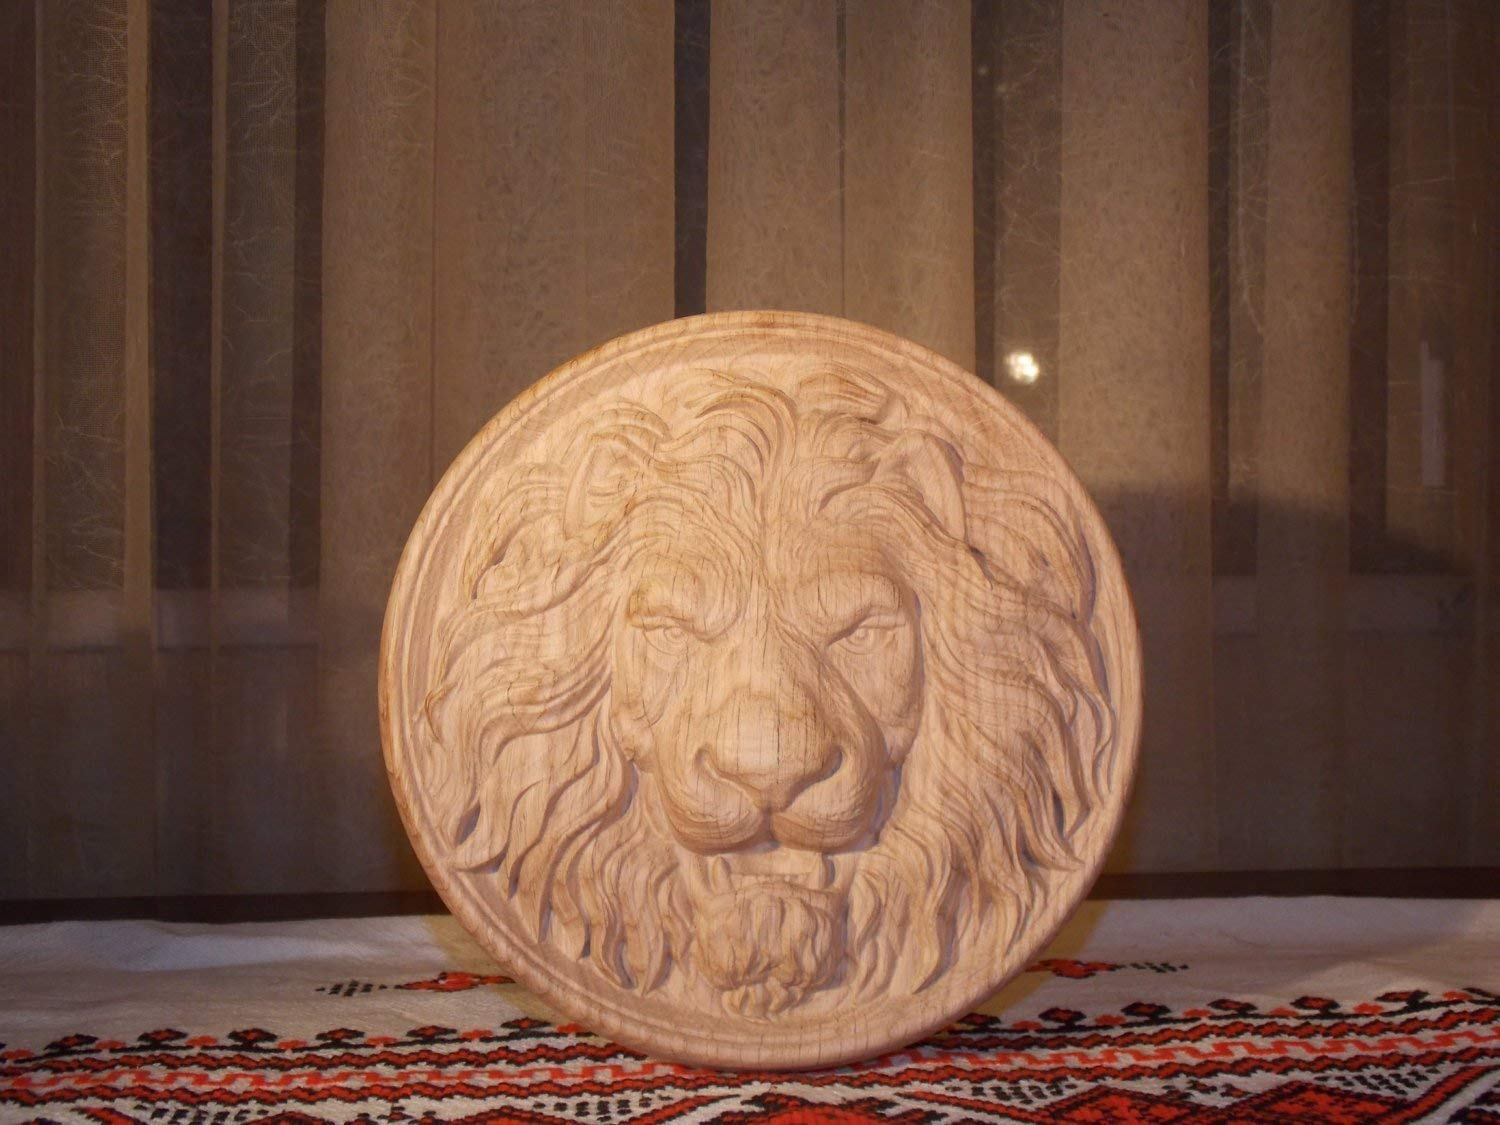 Lion Head Carving Wood furniture appliques Furniture Onlay Wood rosette wood carvings wood wall art Round Rosette